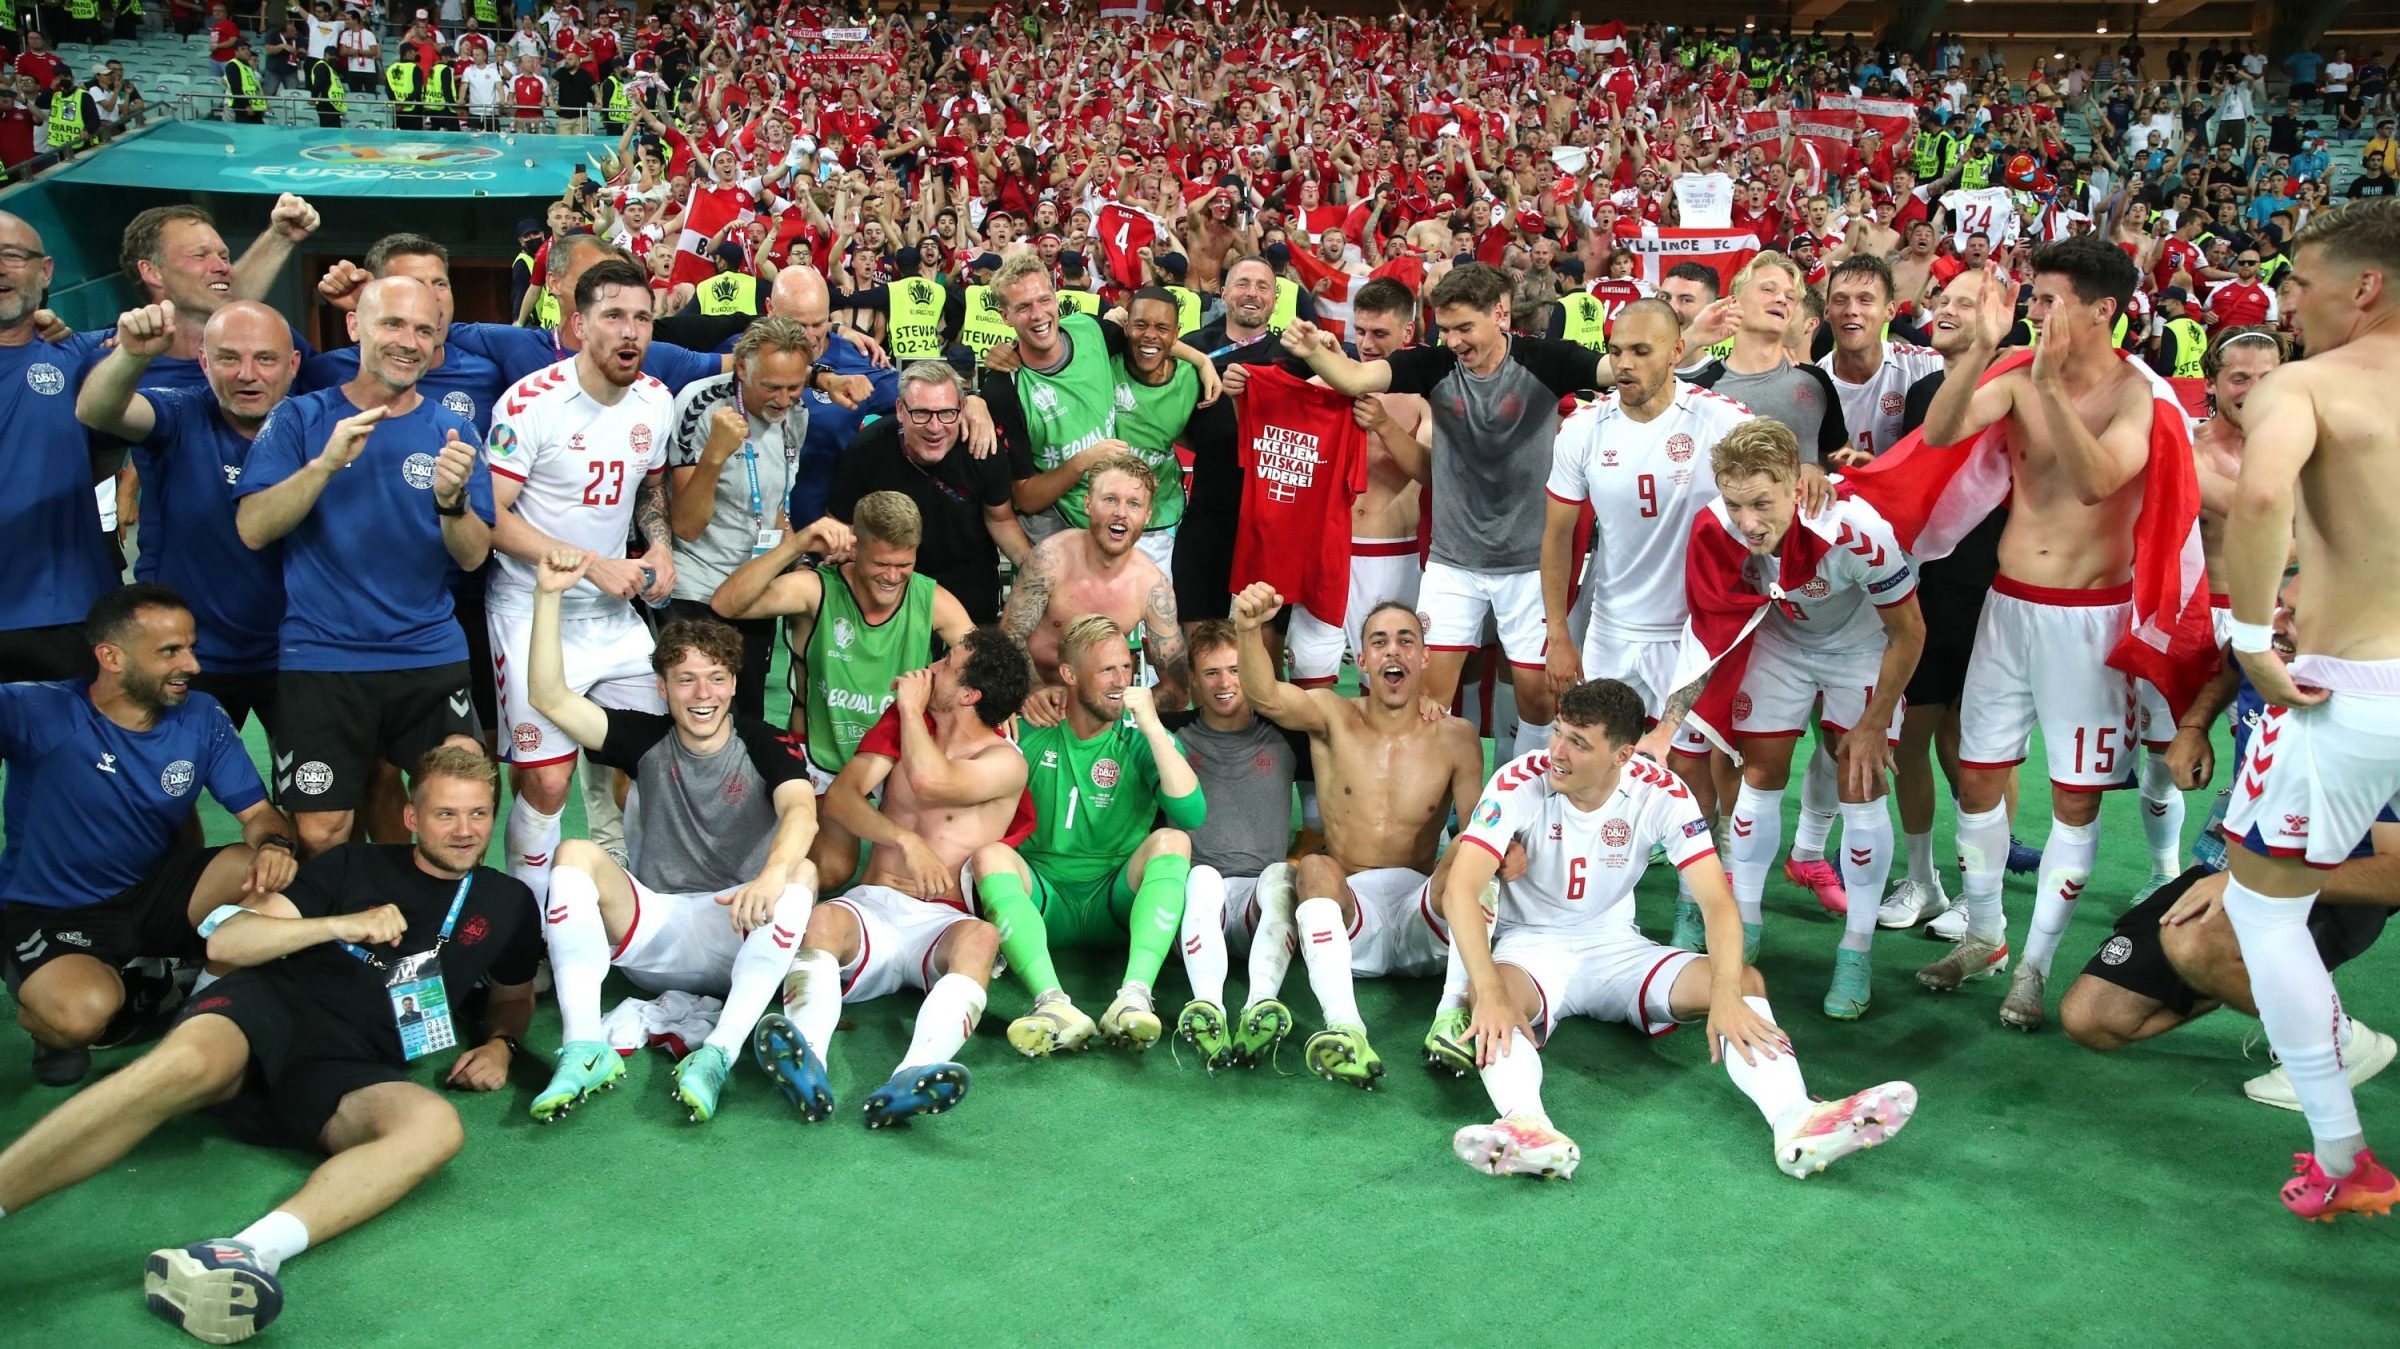 Players of Denmark celebrate their side's victory in front of the fans after the UEFA Euro 2020 Championship Quarter-final match between Czech Republic and Denmark at Baku Olimpiya Stadionu on July 03, 2021 in Baku, Azerbaijan.